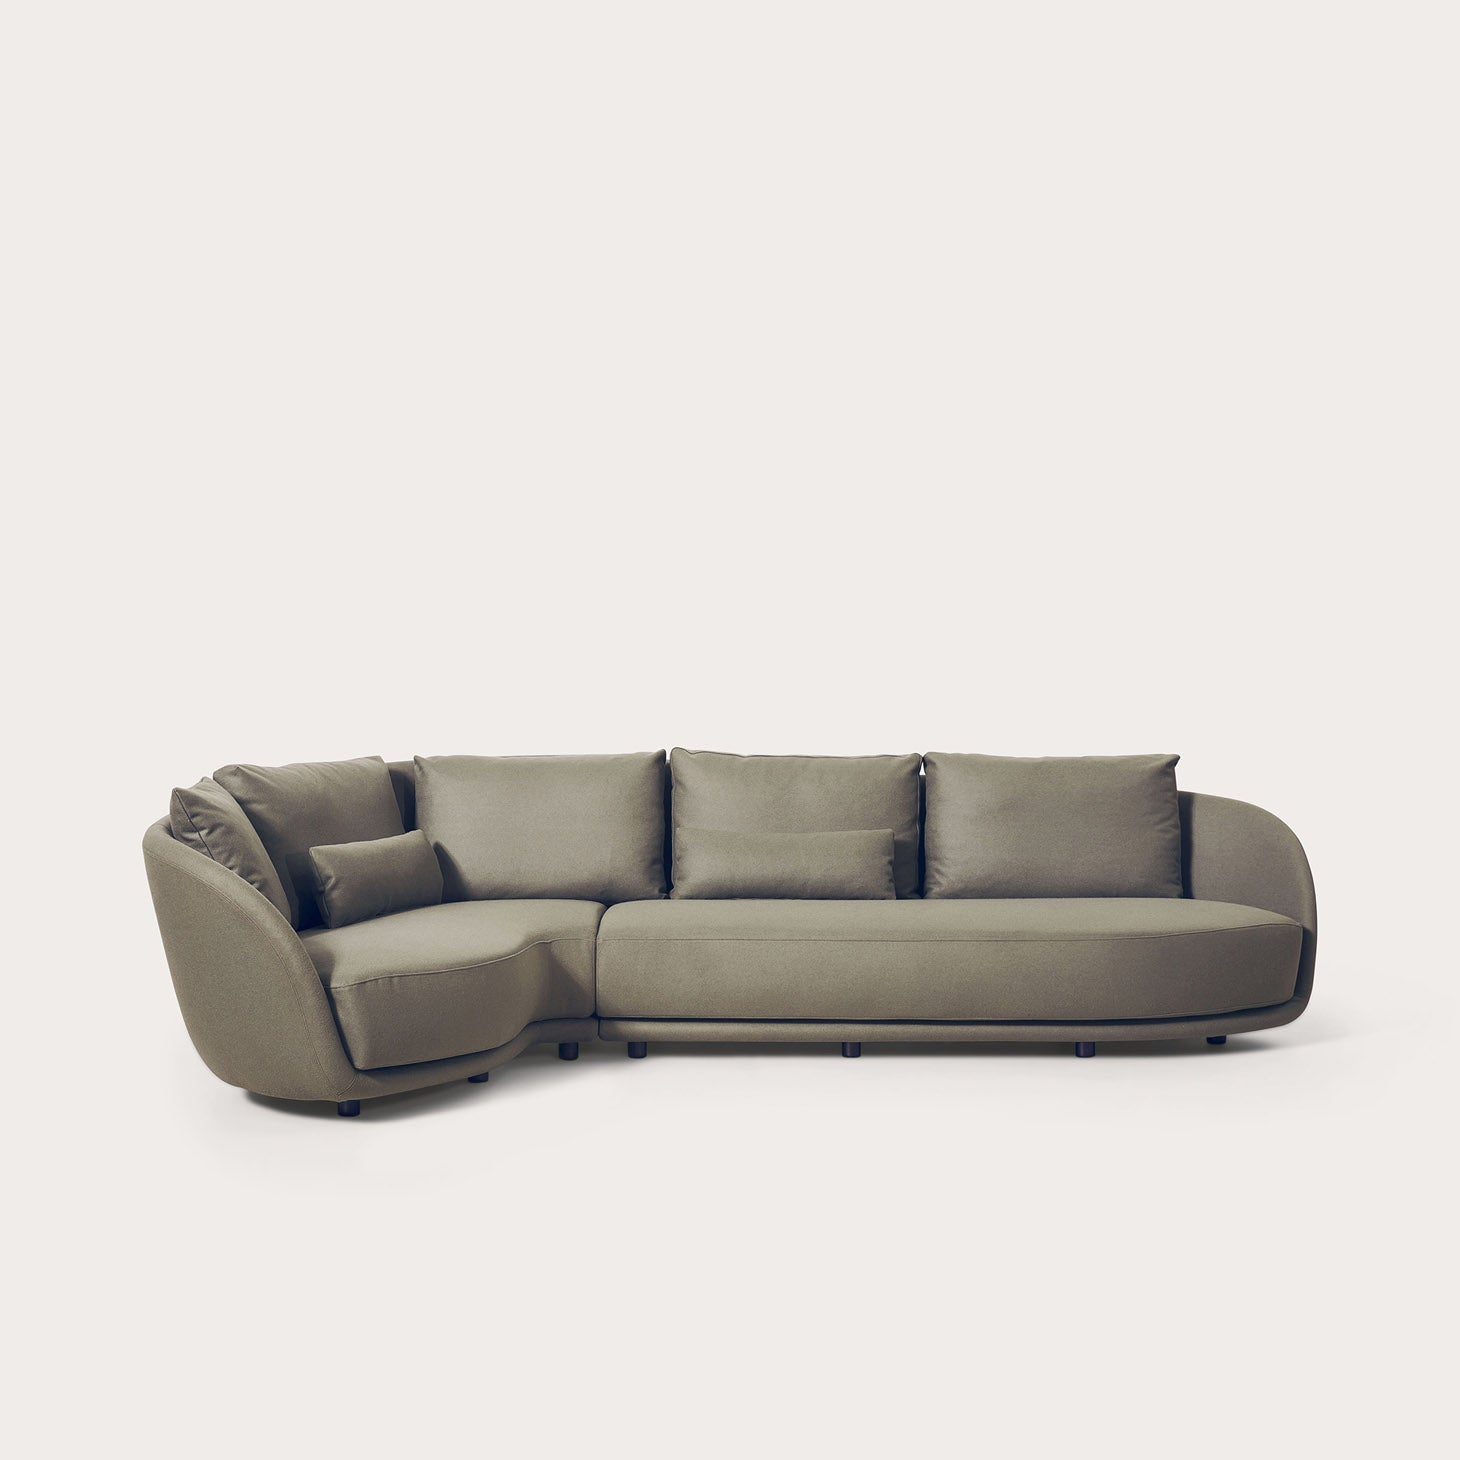 Heath Sofa Seating Yabu Pushelberg Designer Furniture Sku: 247-240-10346